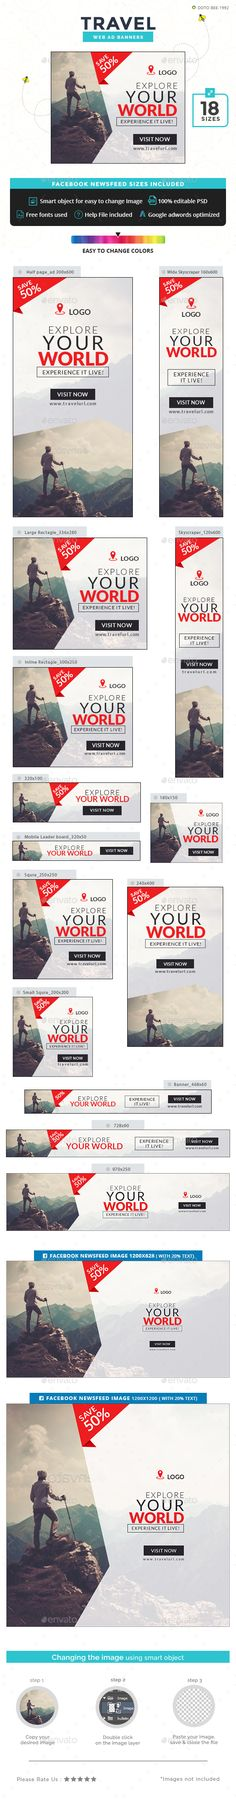 #Travel #Banner #Template - #Banners & #Ads #Web #Elements #Design. Download here: https://graphicriver.net/item/travel-banners/19902789?ref=yinkira